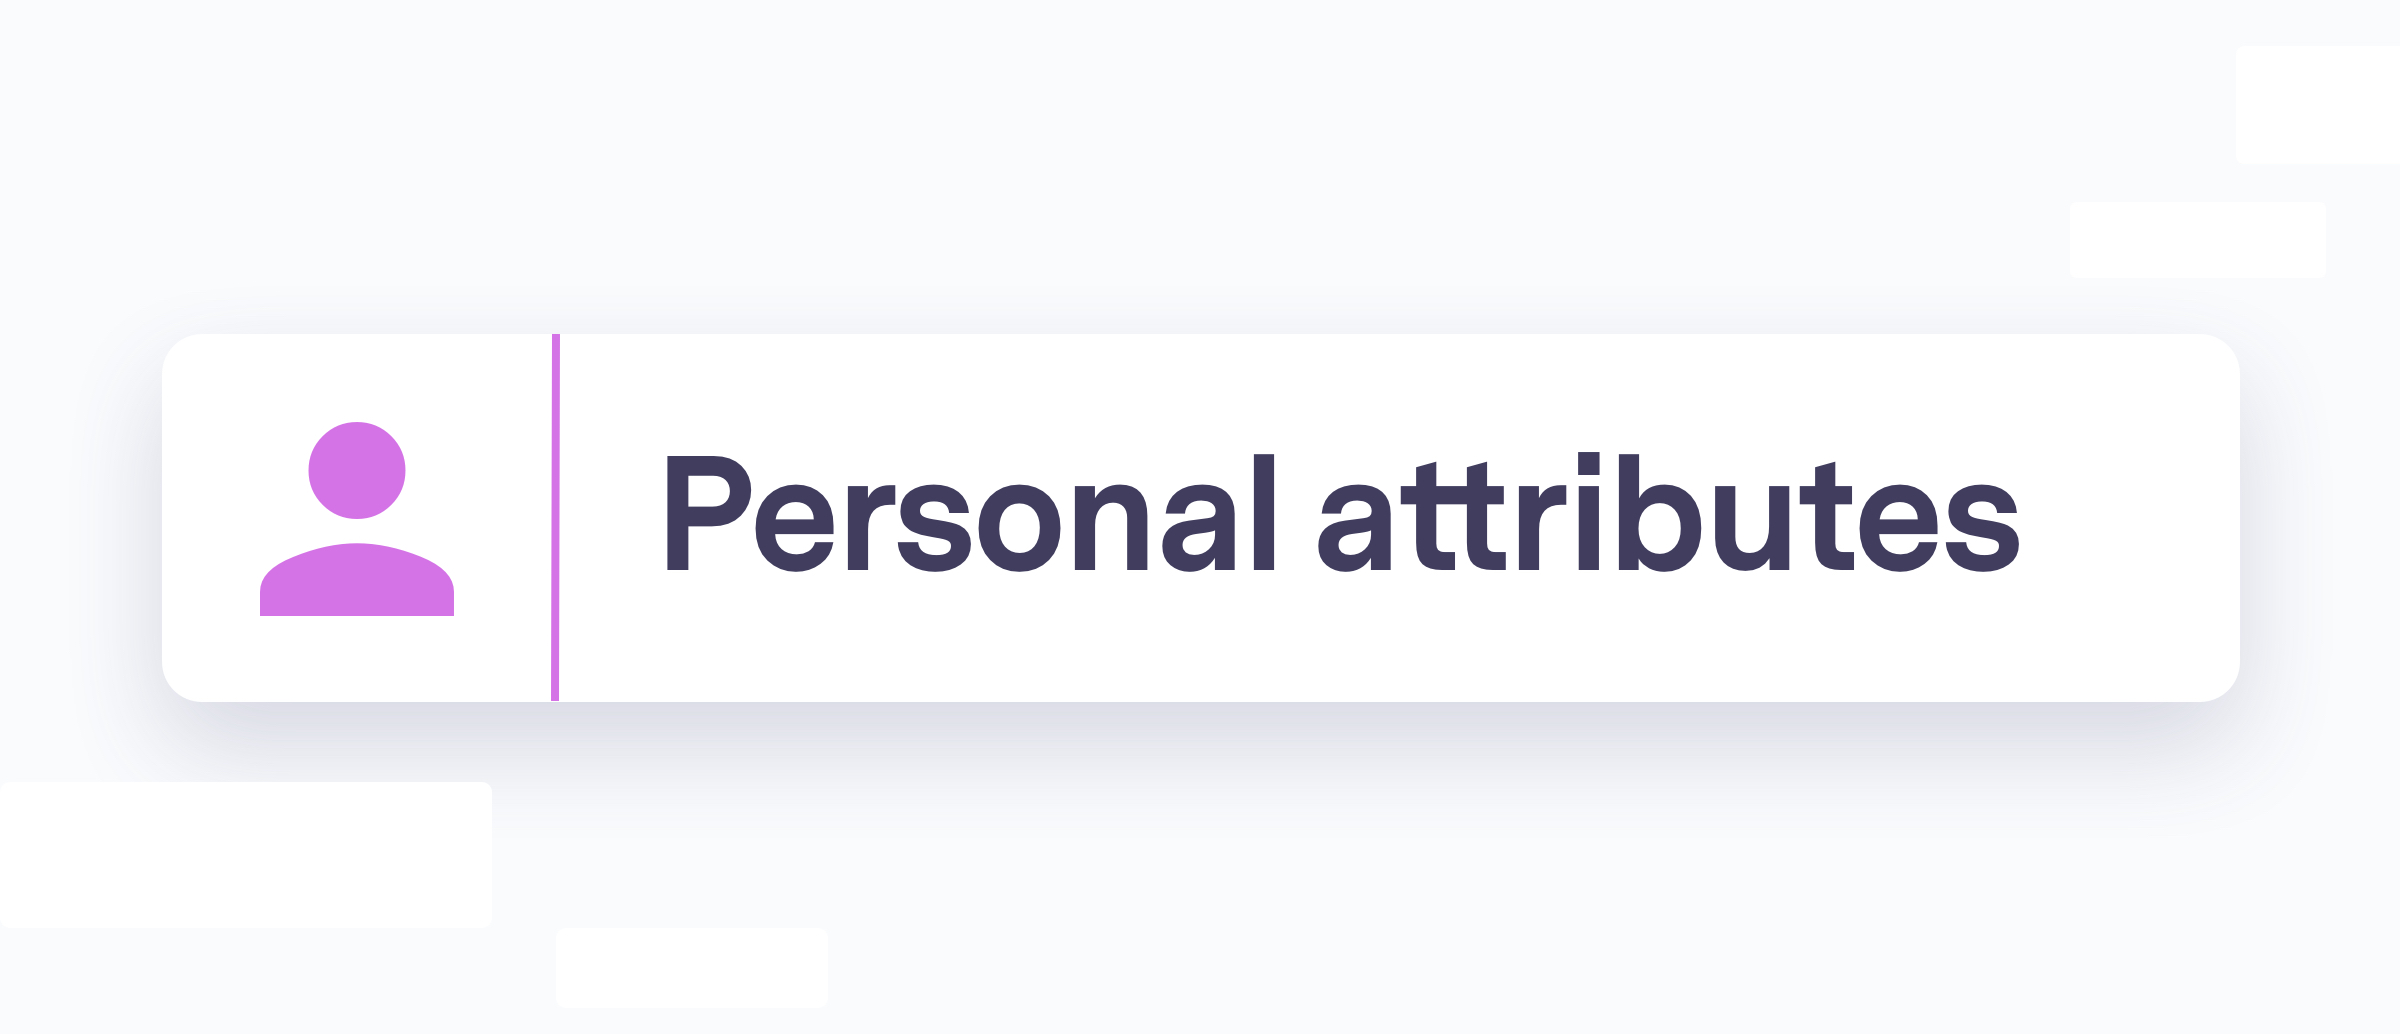 Personal attributes section with pink person icon